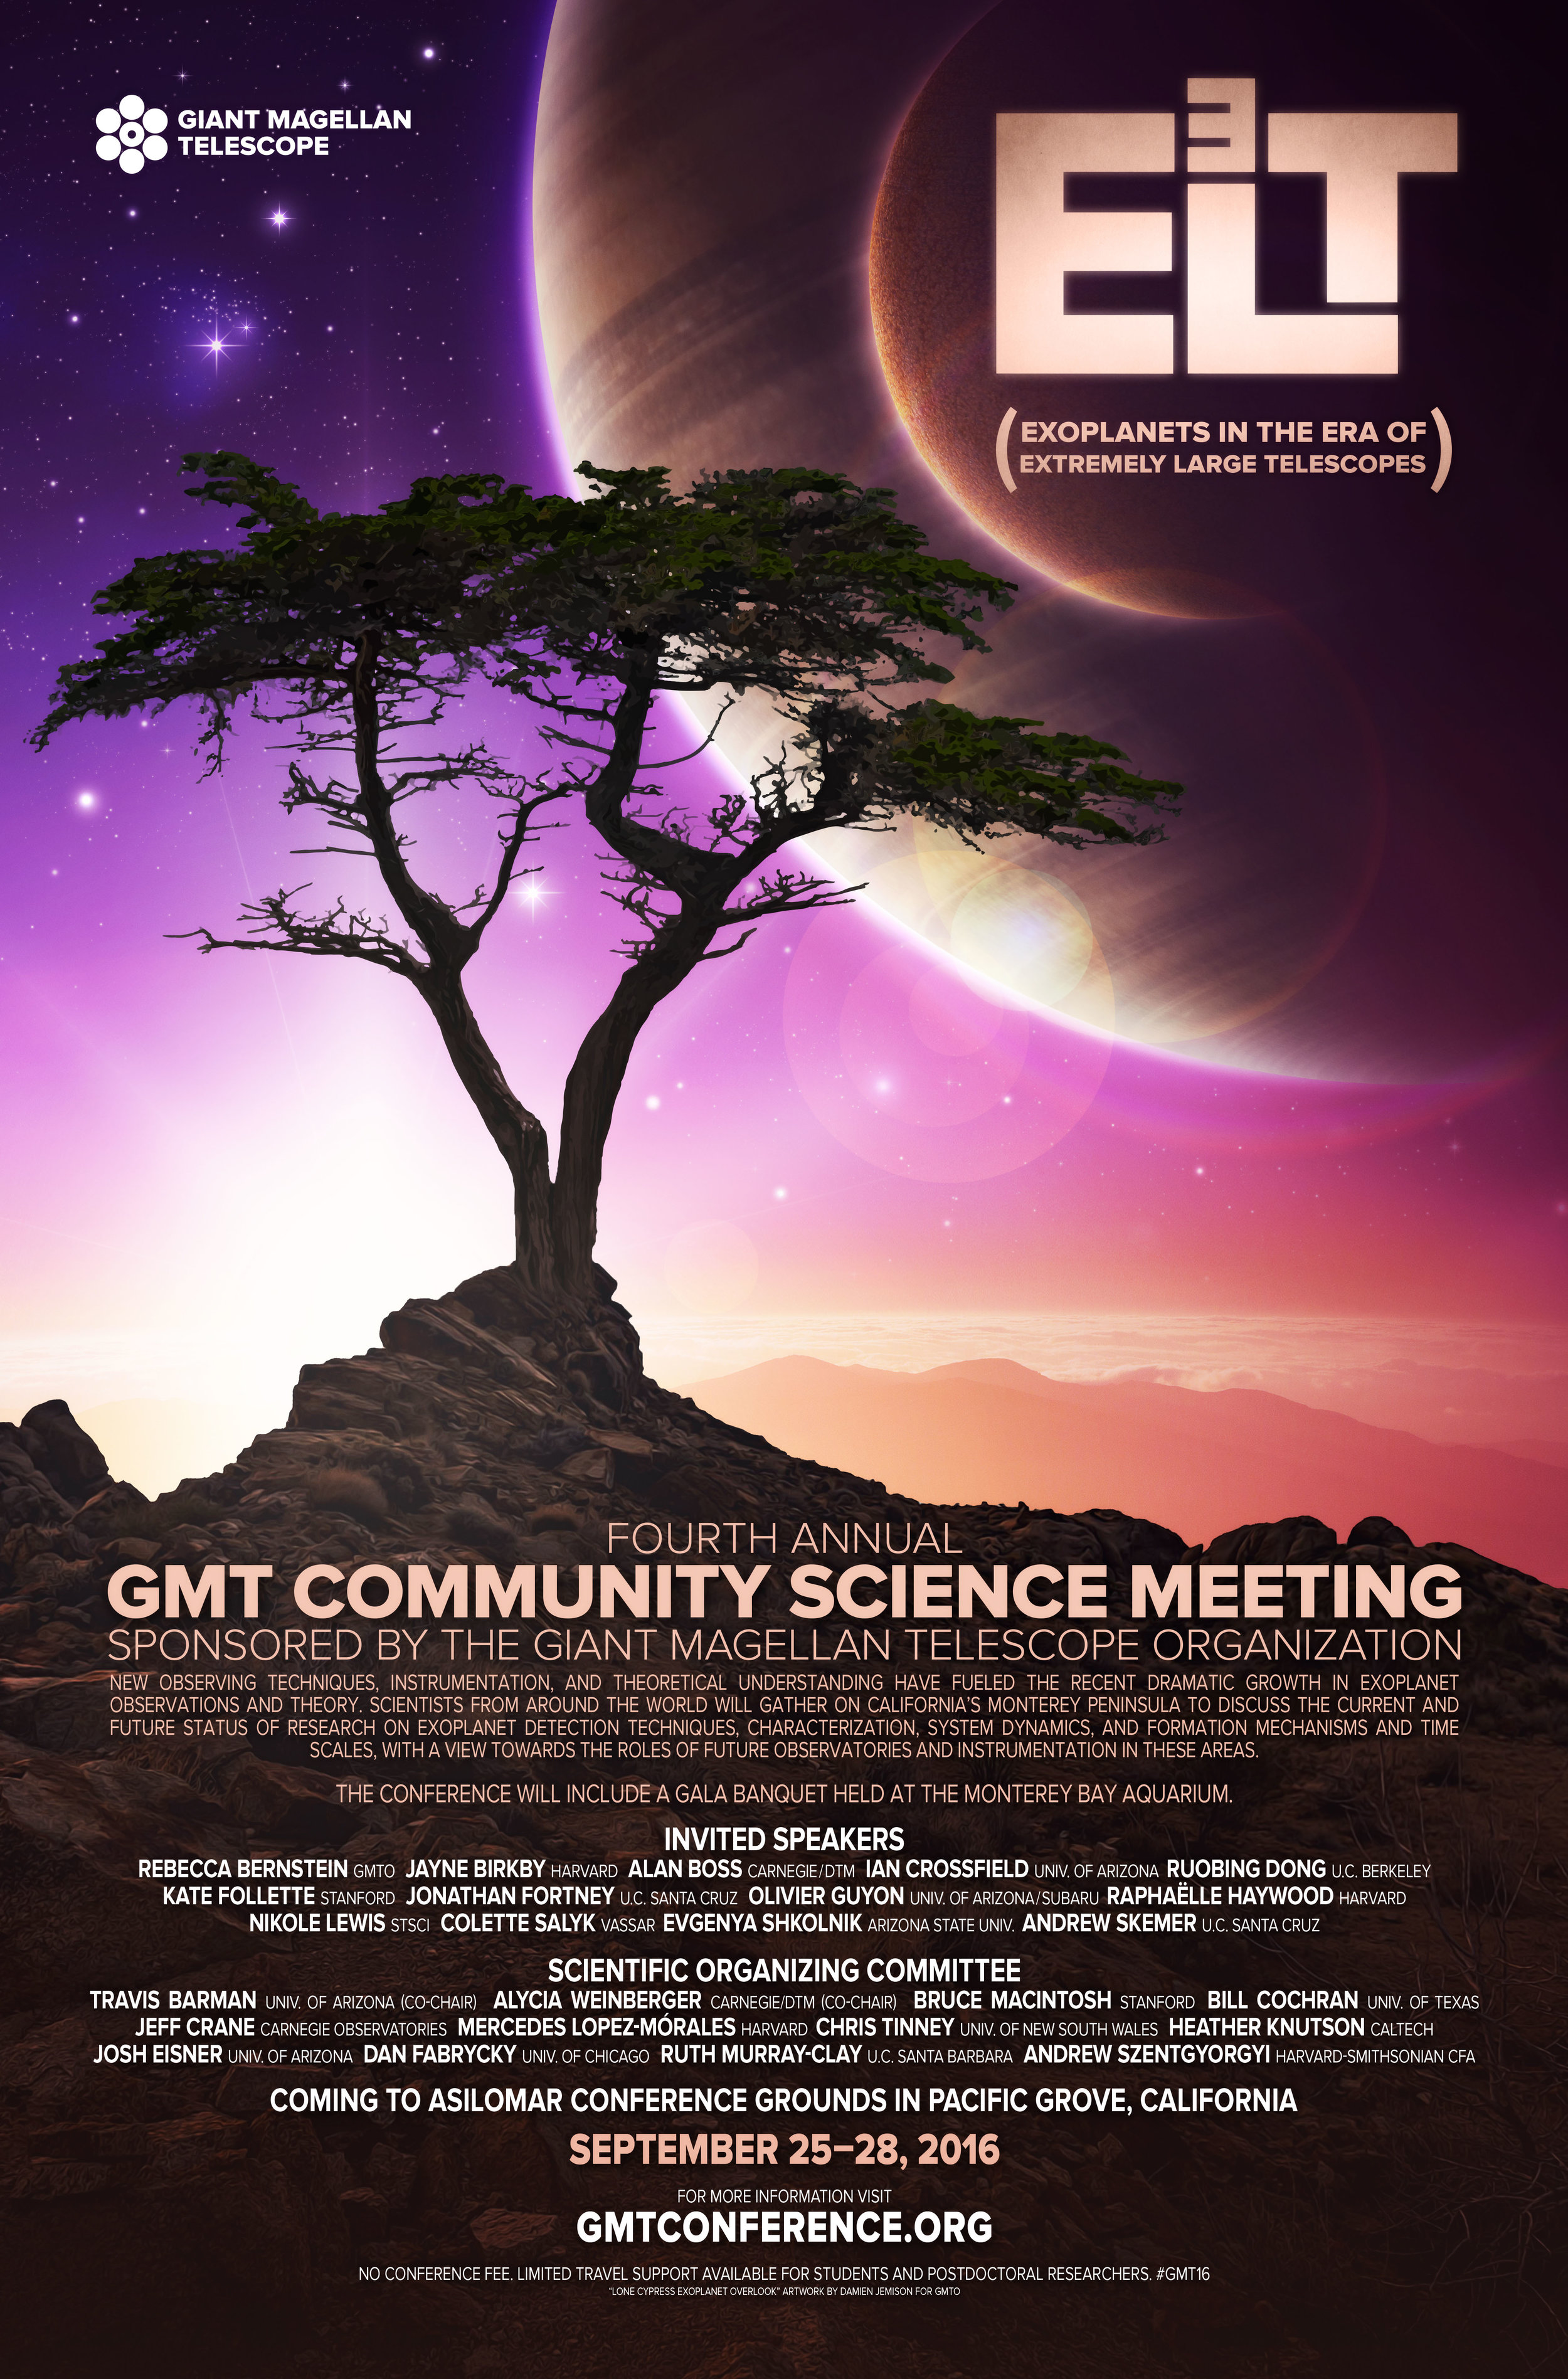 Sixth Annual GMT Community Science Meeting Poster.    Download a JPG Here